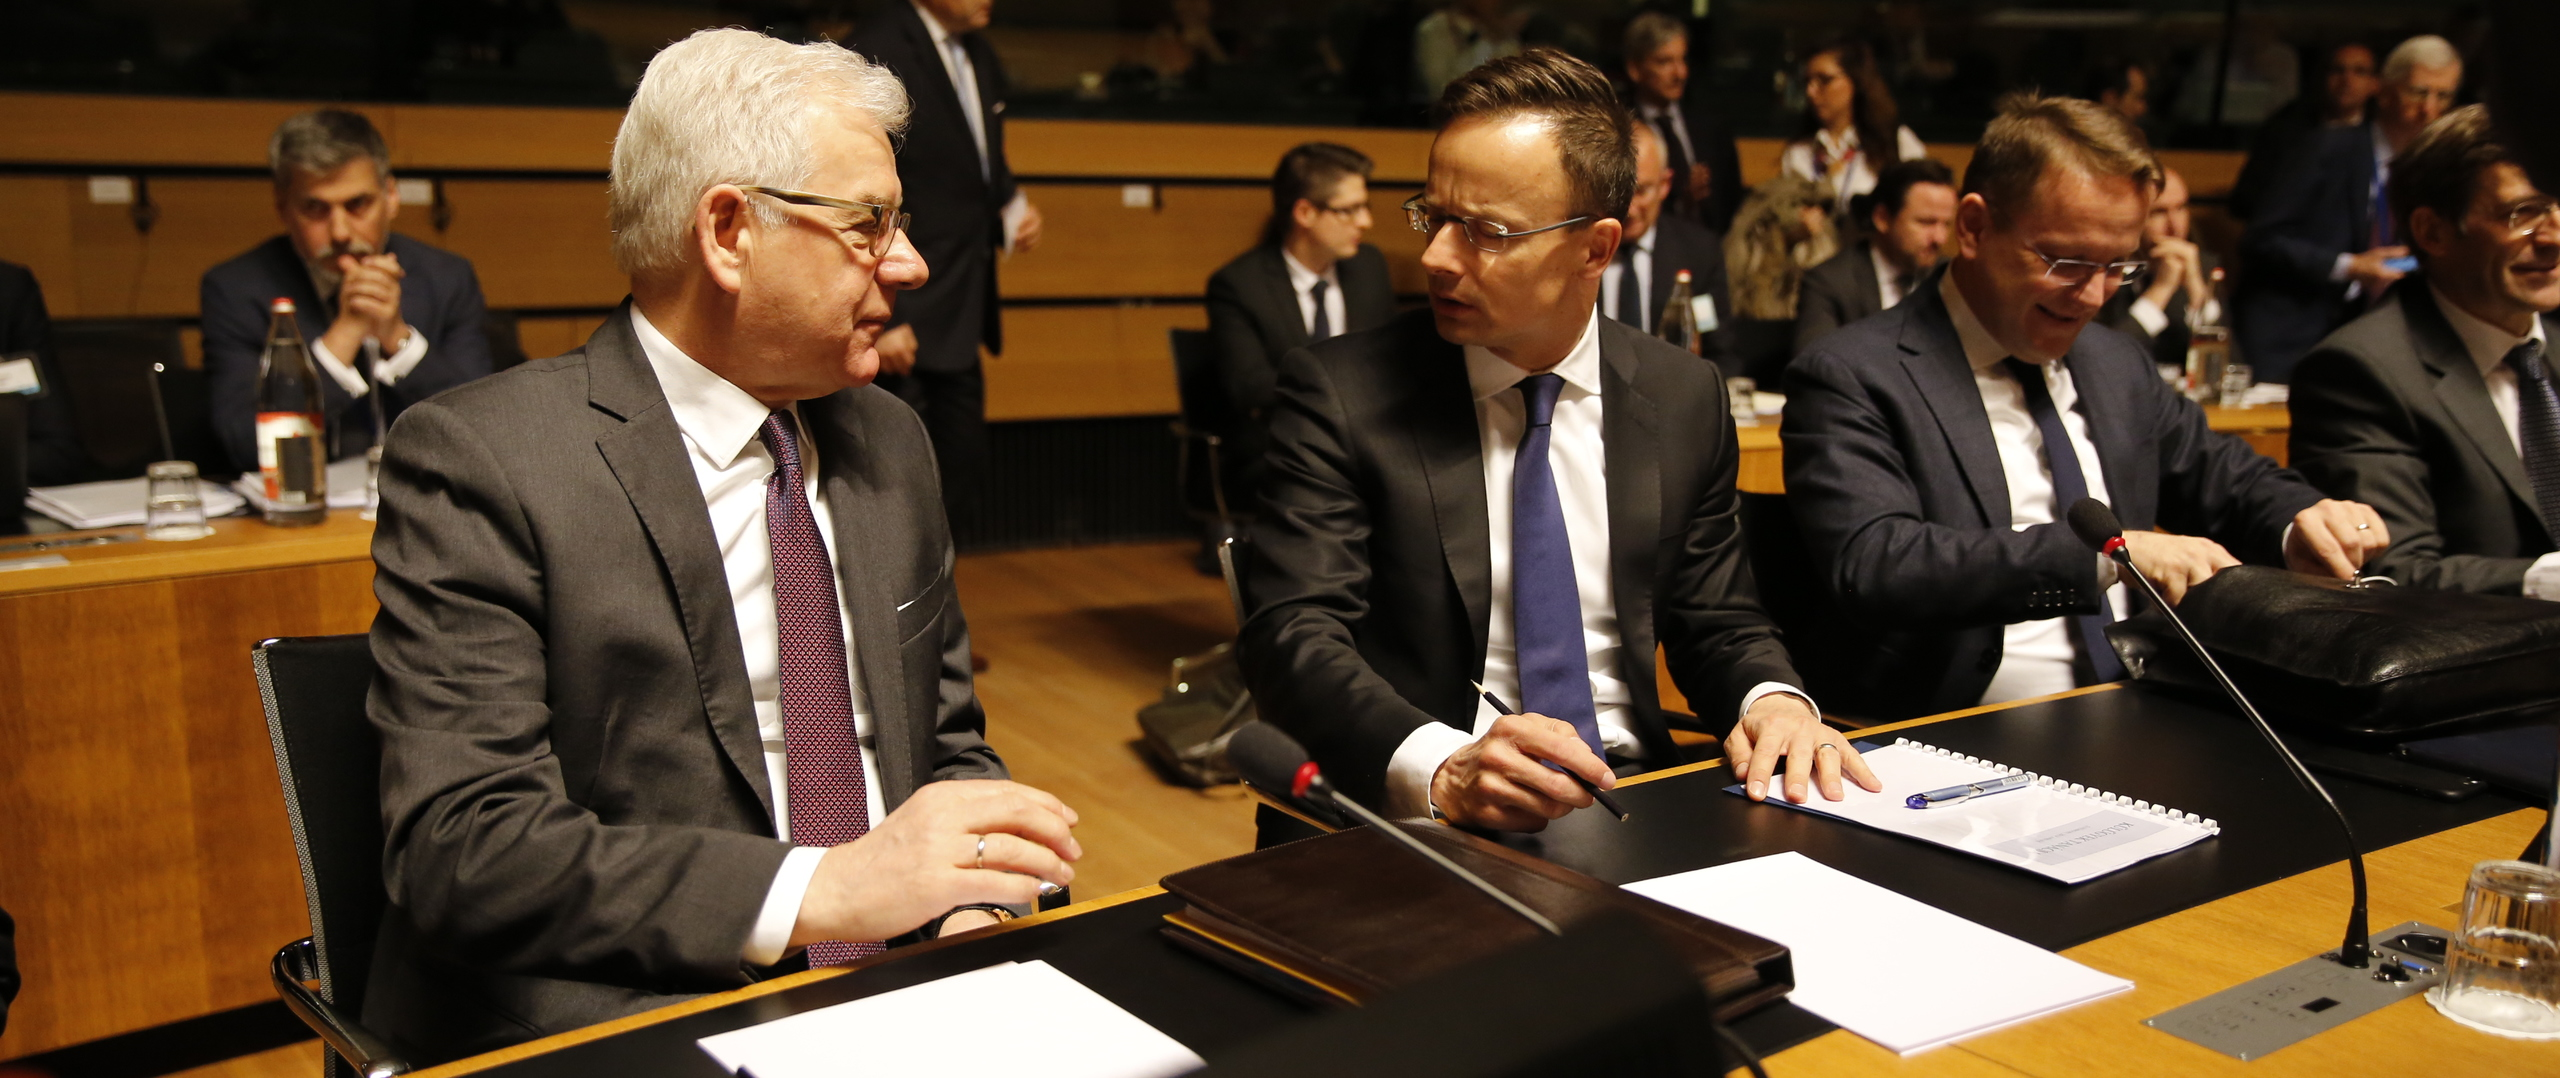 Minister Jacek Czaputowicz attends Foreign Affairs Council